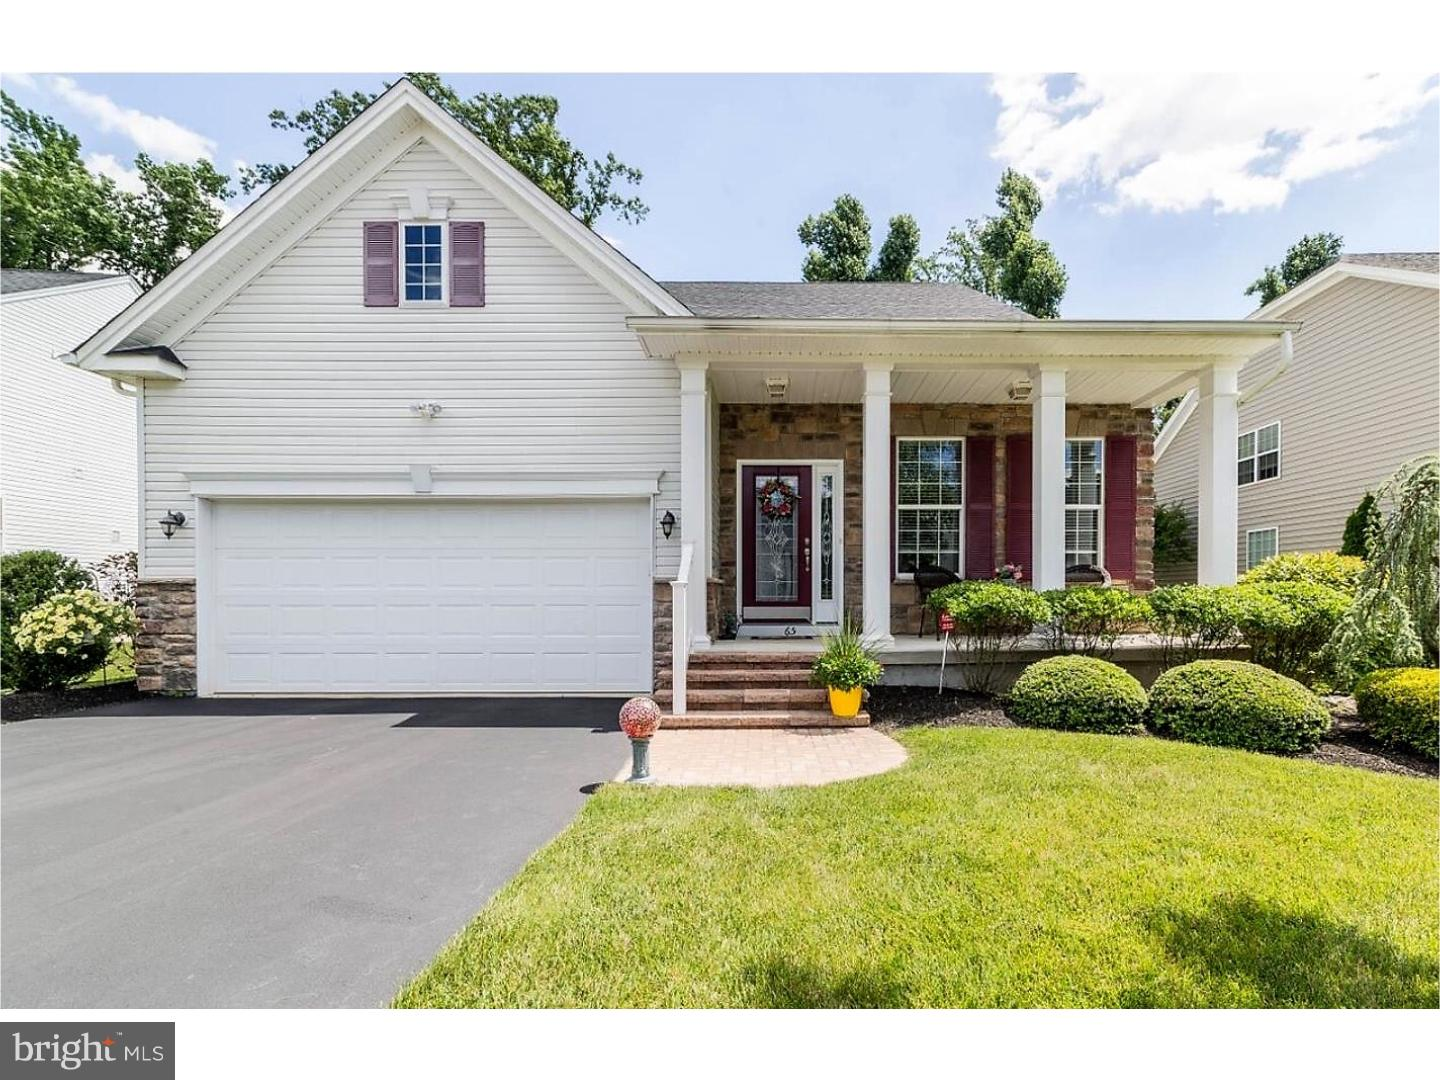 Single Family Home for Sale at 65 WOODBURY Court Clarksboro, New Jersey 08020 United States